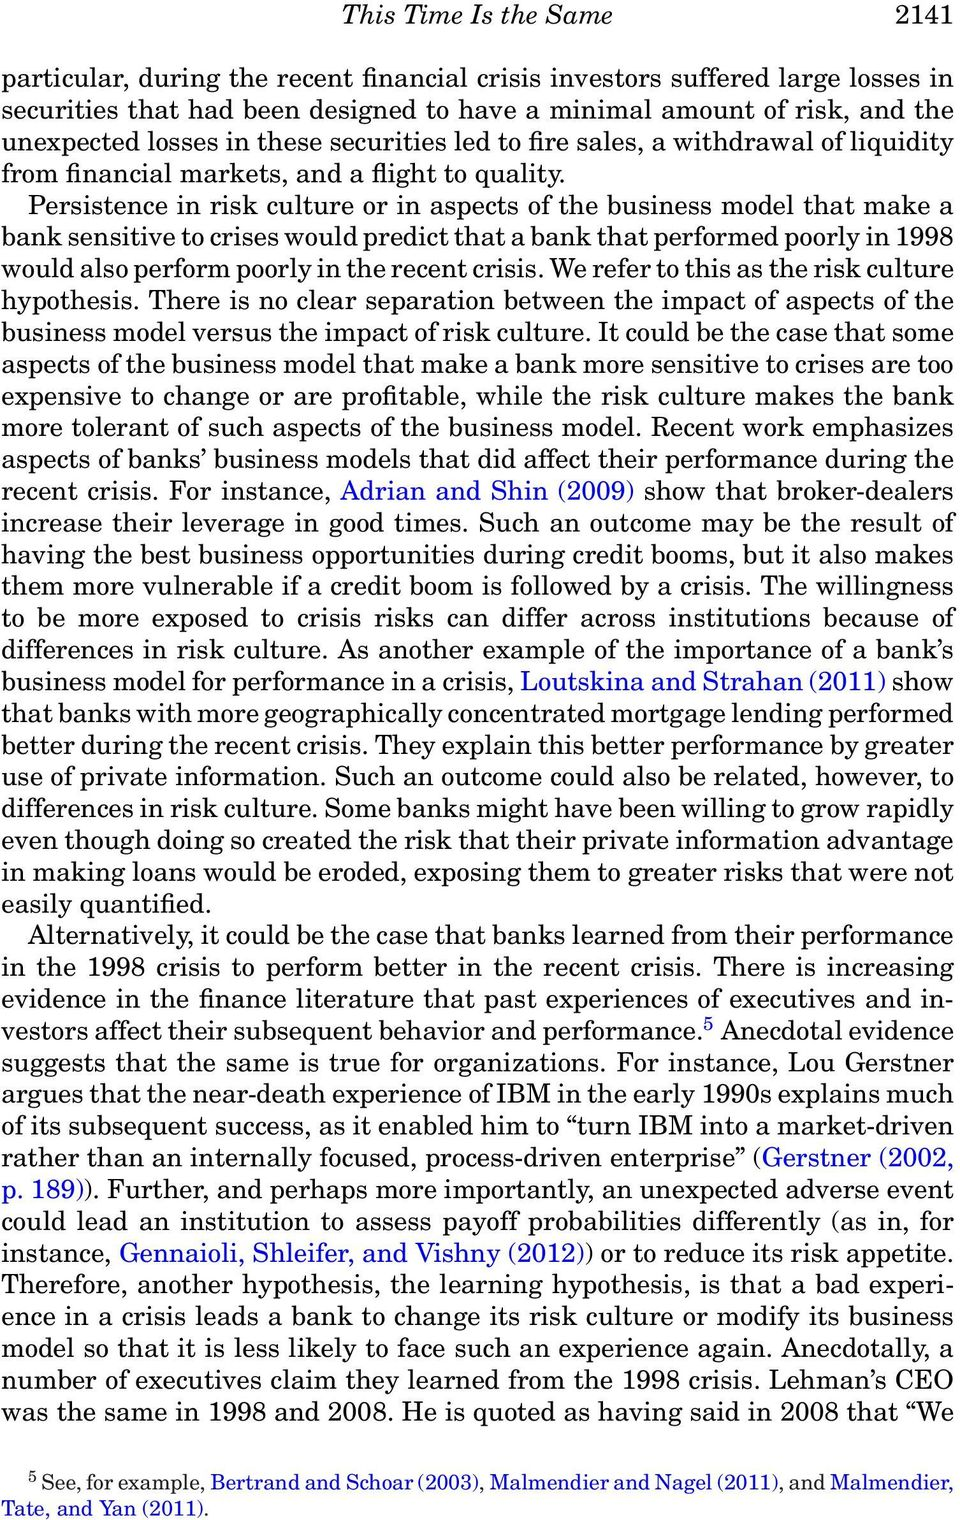 Persistence in risk culture or in aspects of the business model that make a bank sensitive to crises would predict that a bank that performed poorly in 1998 would also perform poorly in the recent